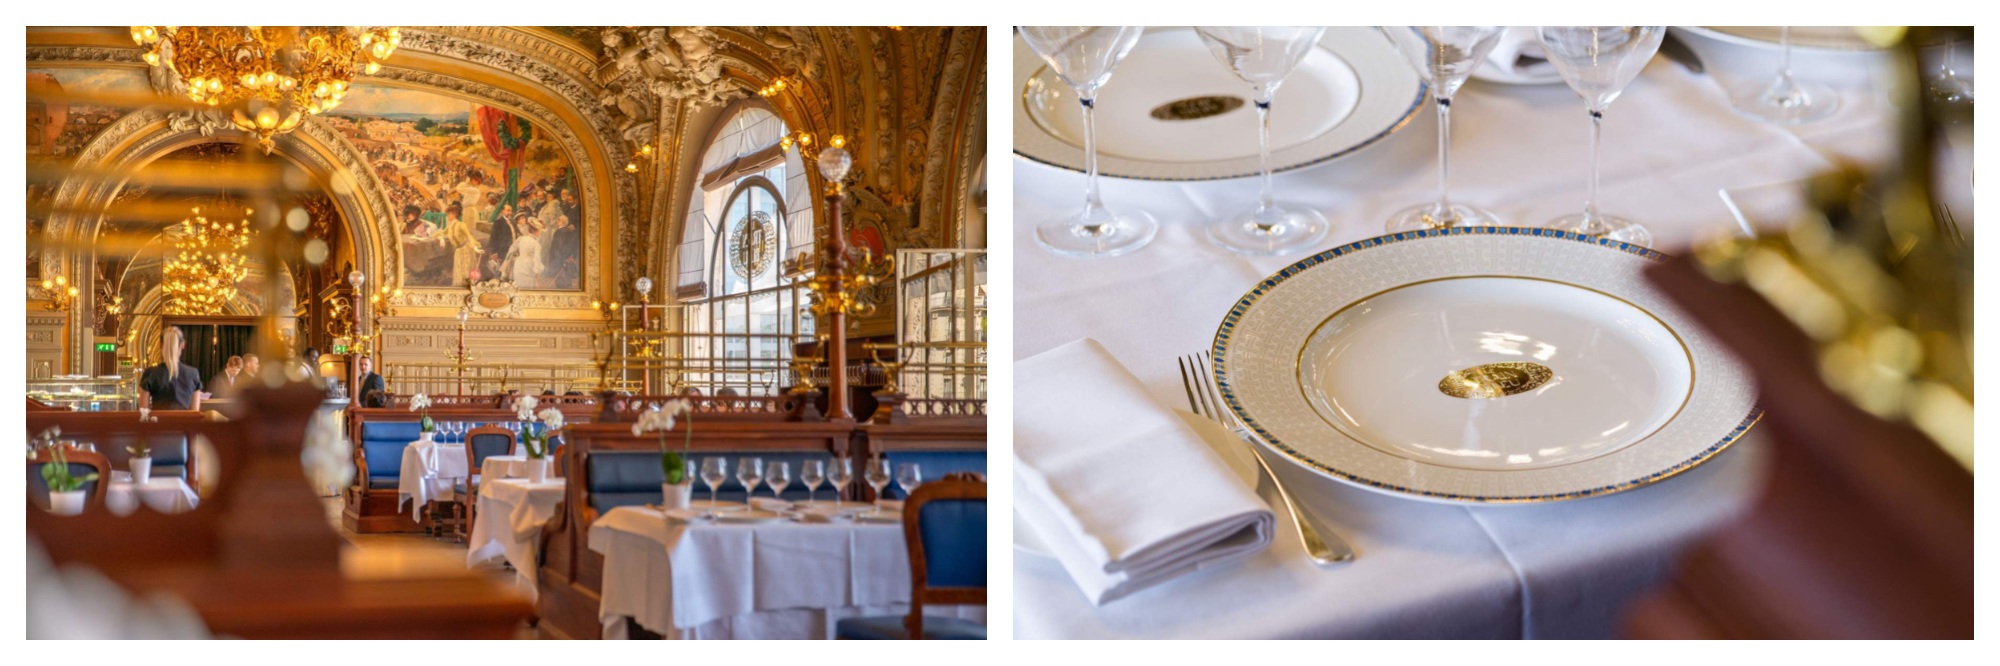 The opulent interior of the restaurant Le Train Bleu in Paris, featuring painted frescos and gold chandeliers (left). A table setting at Le Train Bleu, a white tablecloth with white napkin, cutlery, wine glasses and a white plate with blue and gold detailing and the logo of the restaurant in the middle (right).